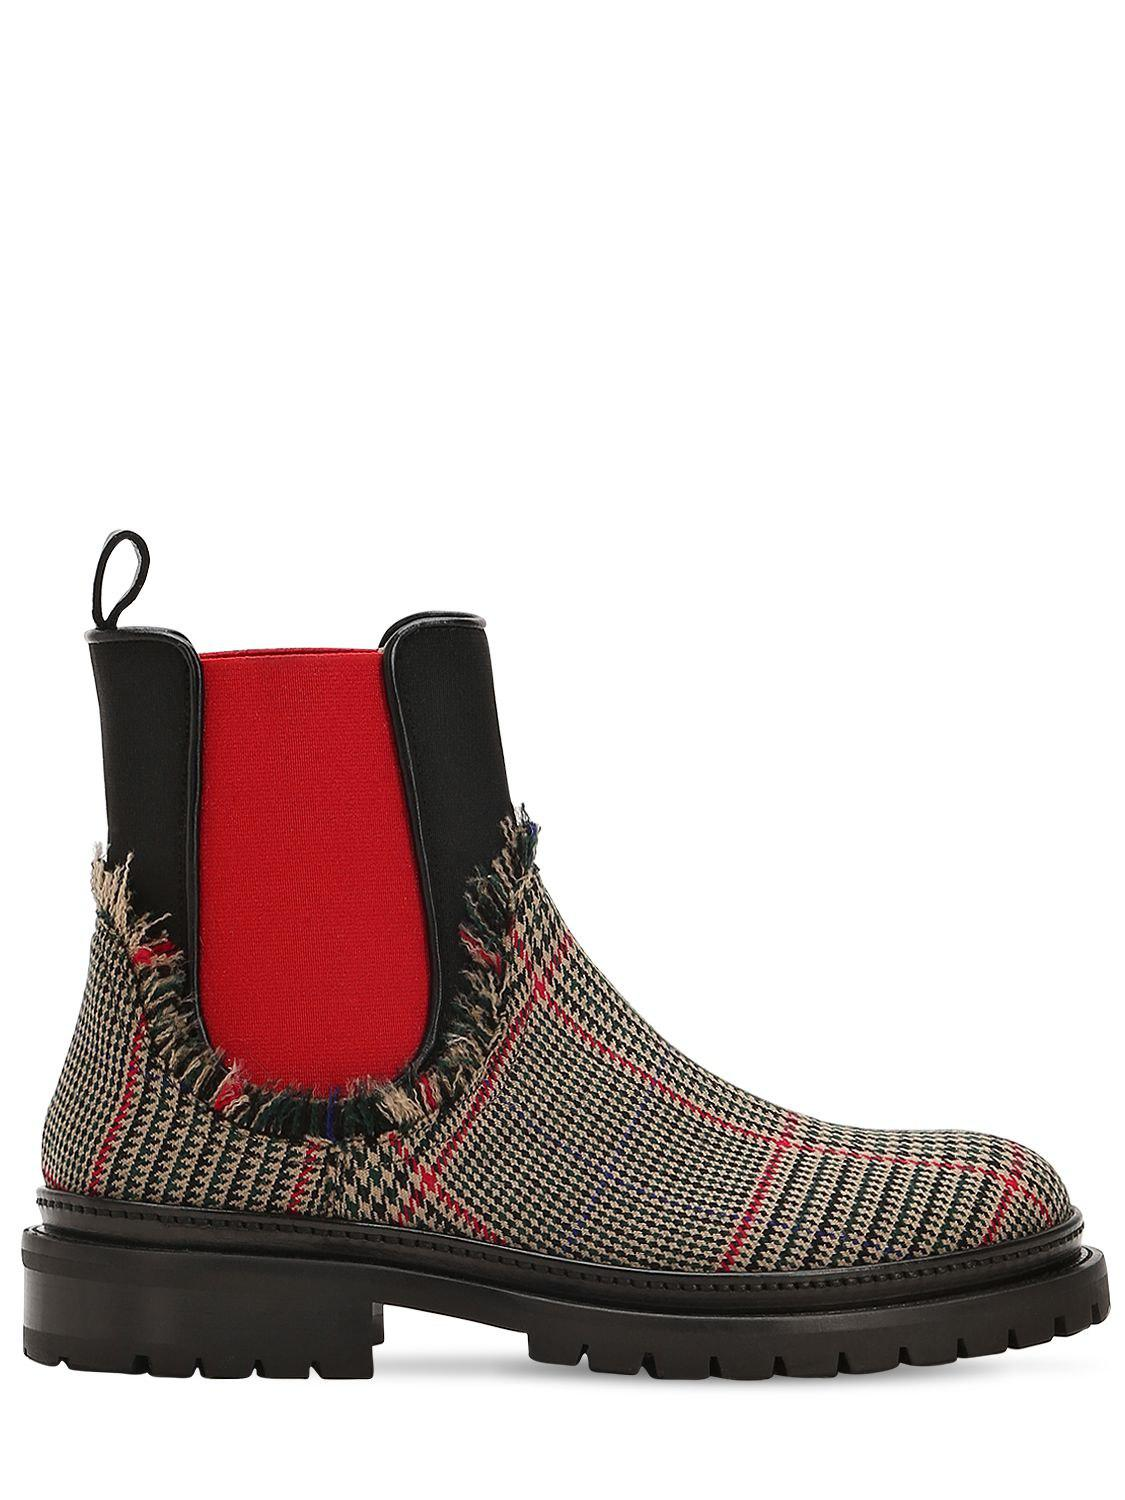 223f17aa82cb Lyst - L Autre Chose 20mm Wool Price Of Wales Chelsea Boots in Red